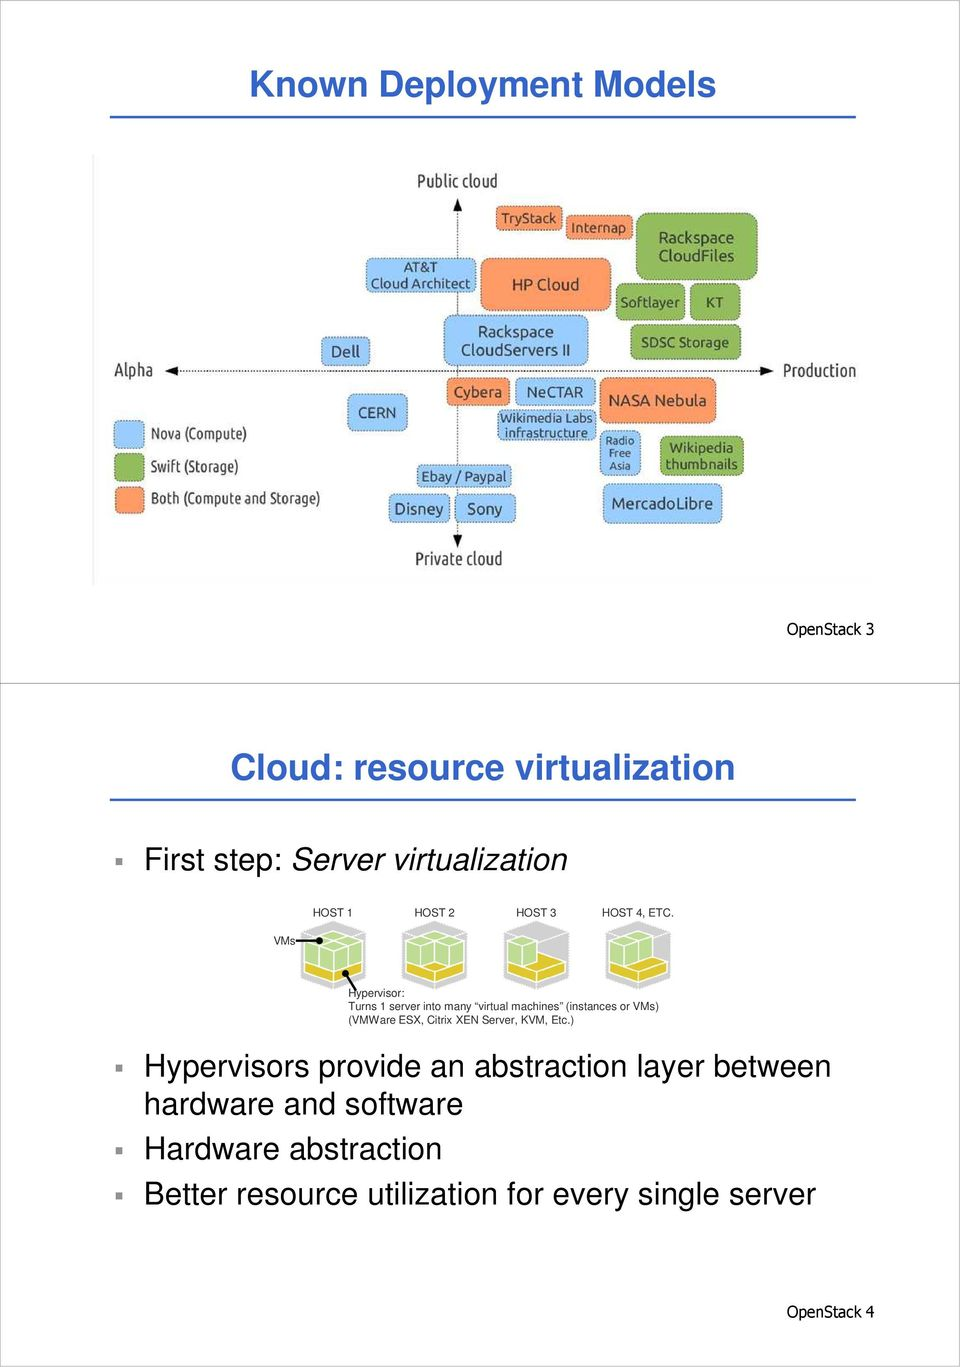 Hypervisor: Turns 1 server into many virtual machines (instances or VMs) (VMWare ESX, Citrix XEN